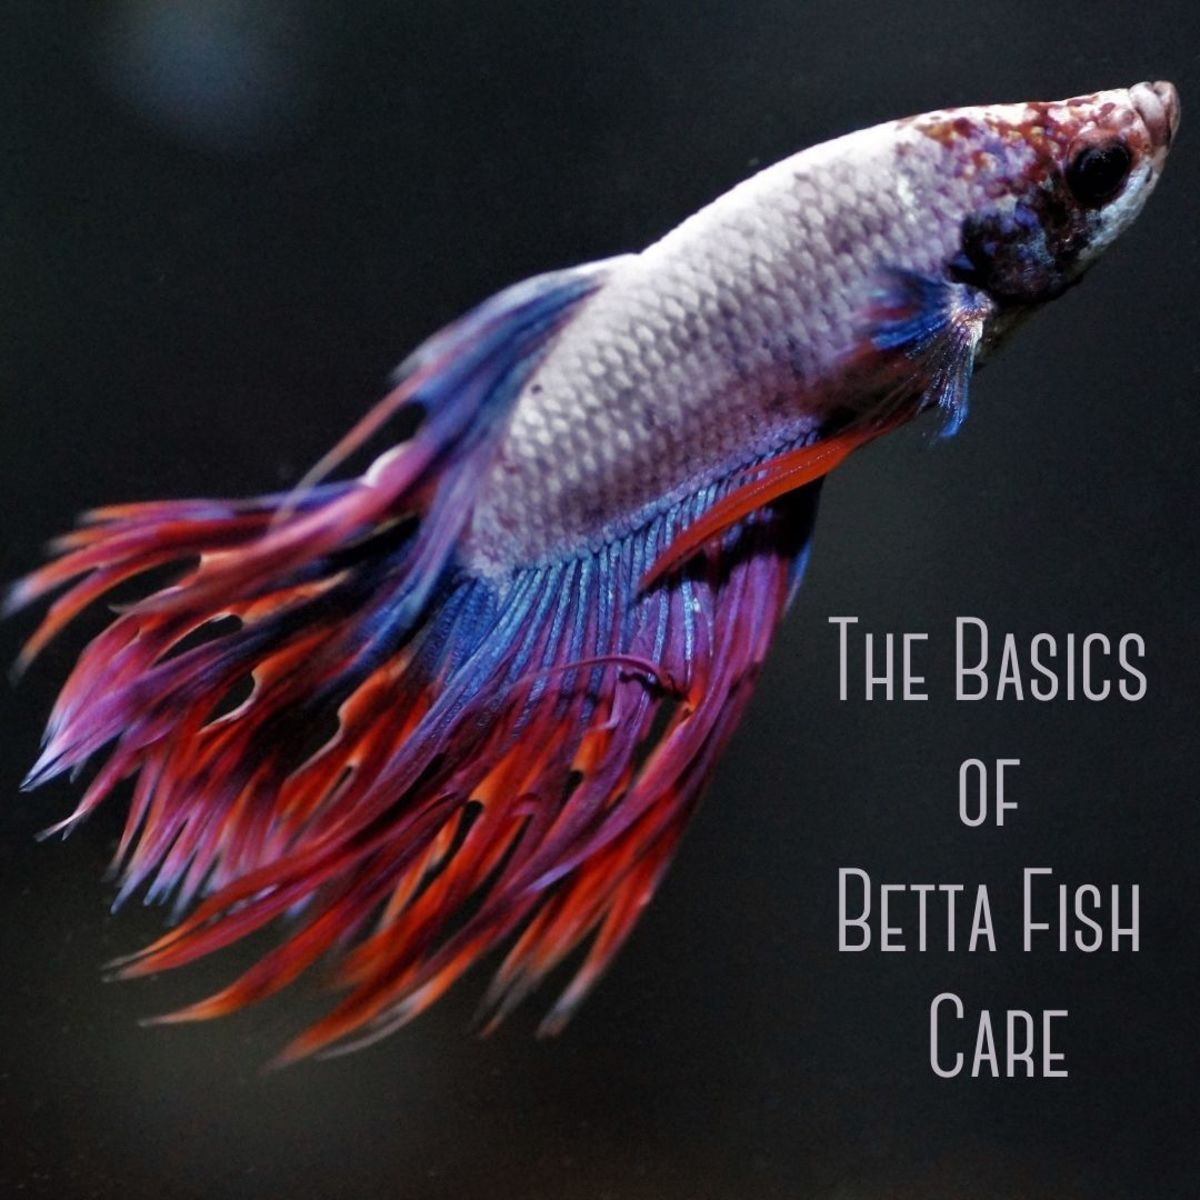 How to care for your betta fish